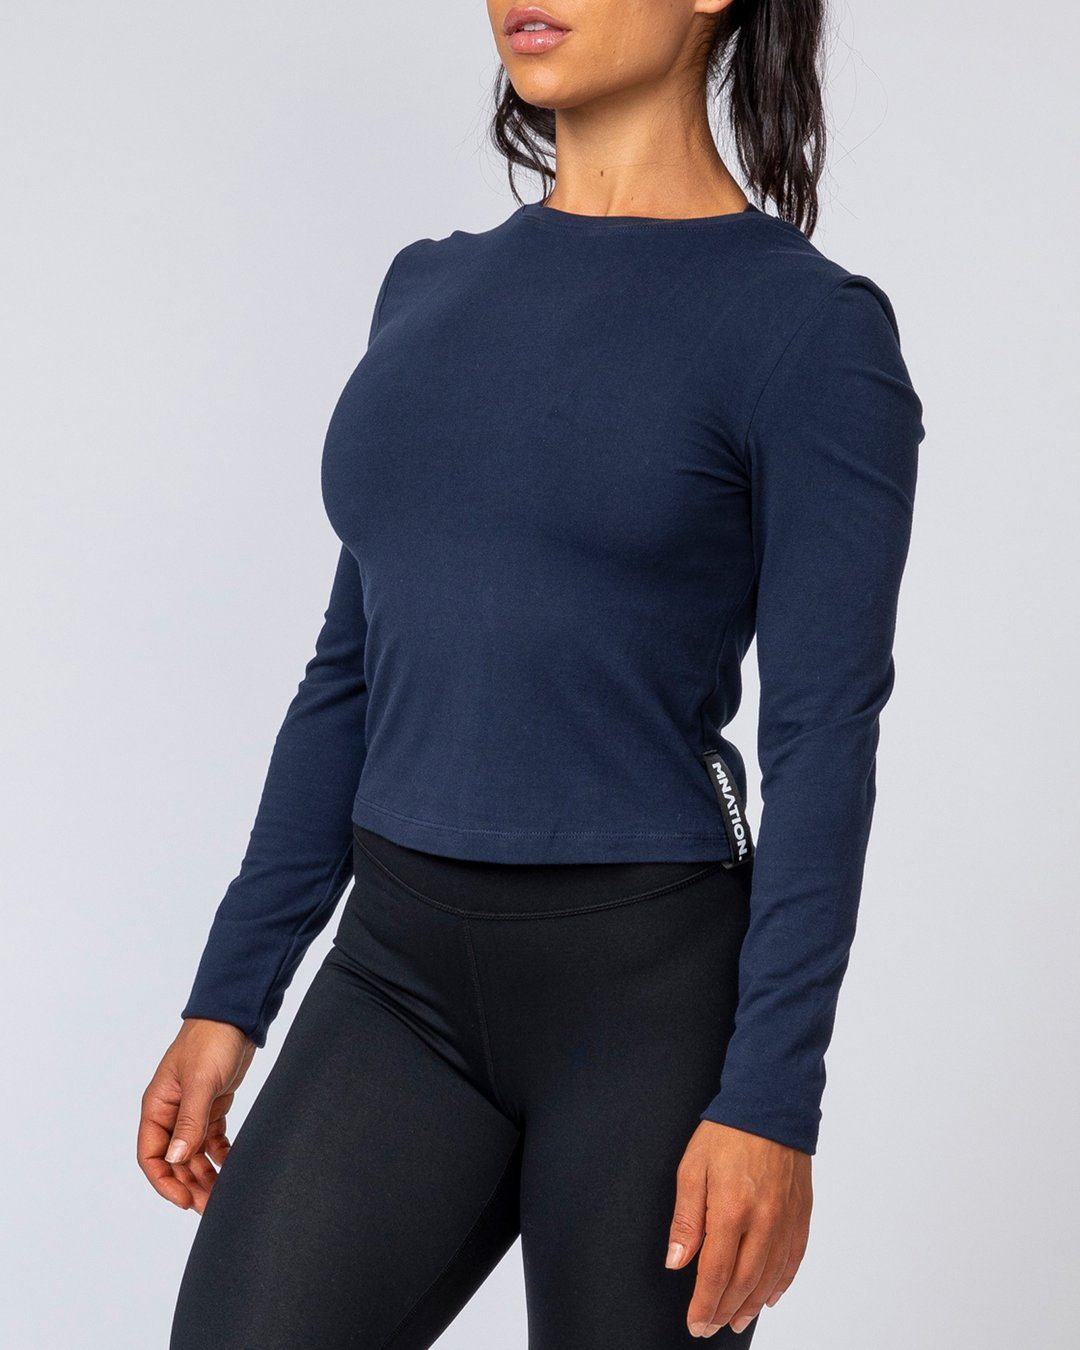 Muscle Nation Women's Long Sleeve - Navy